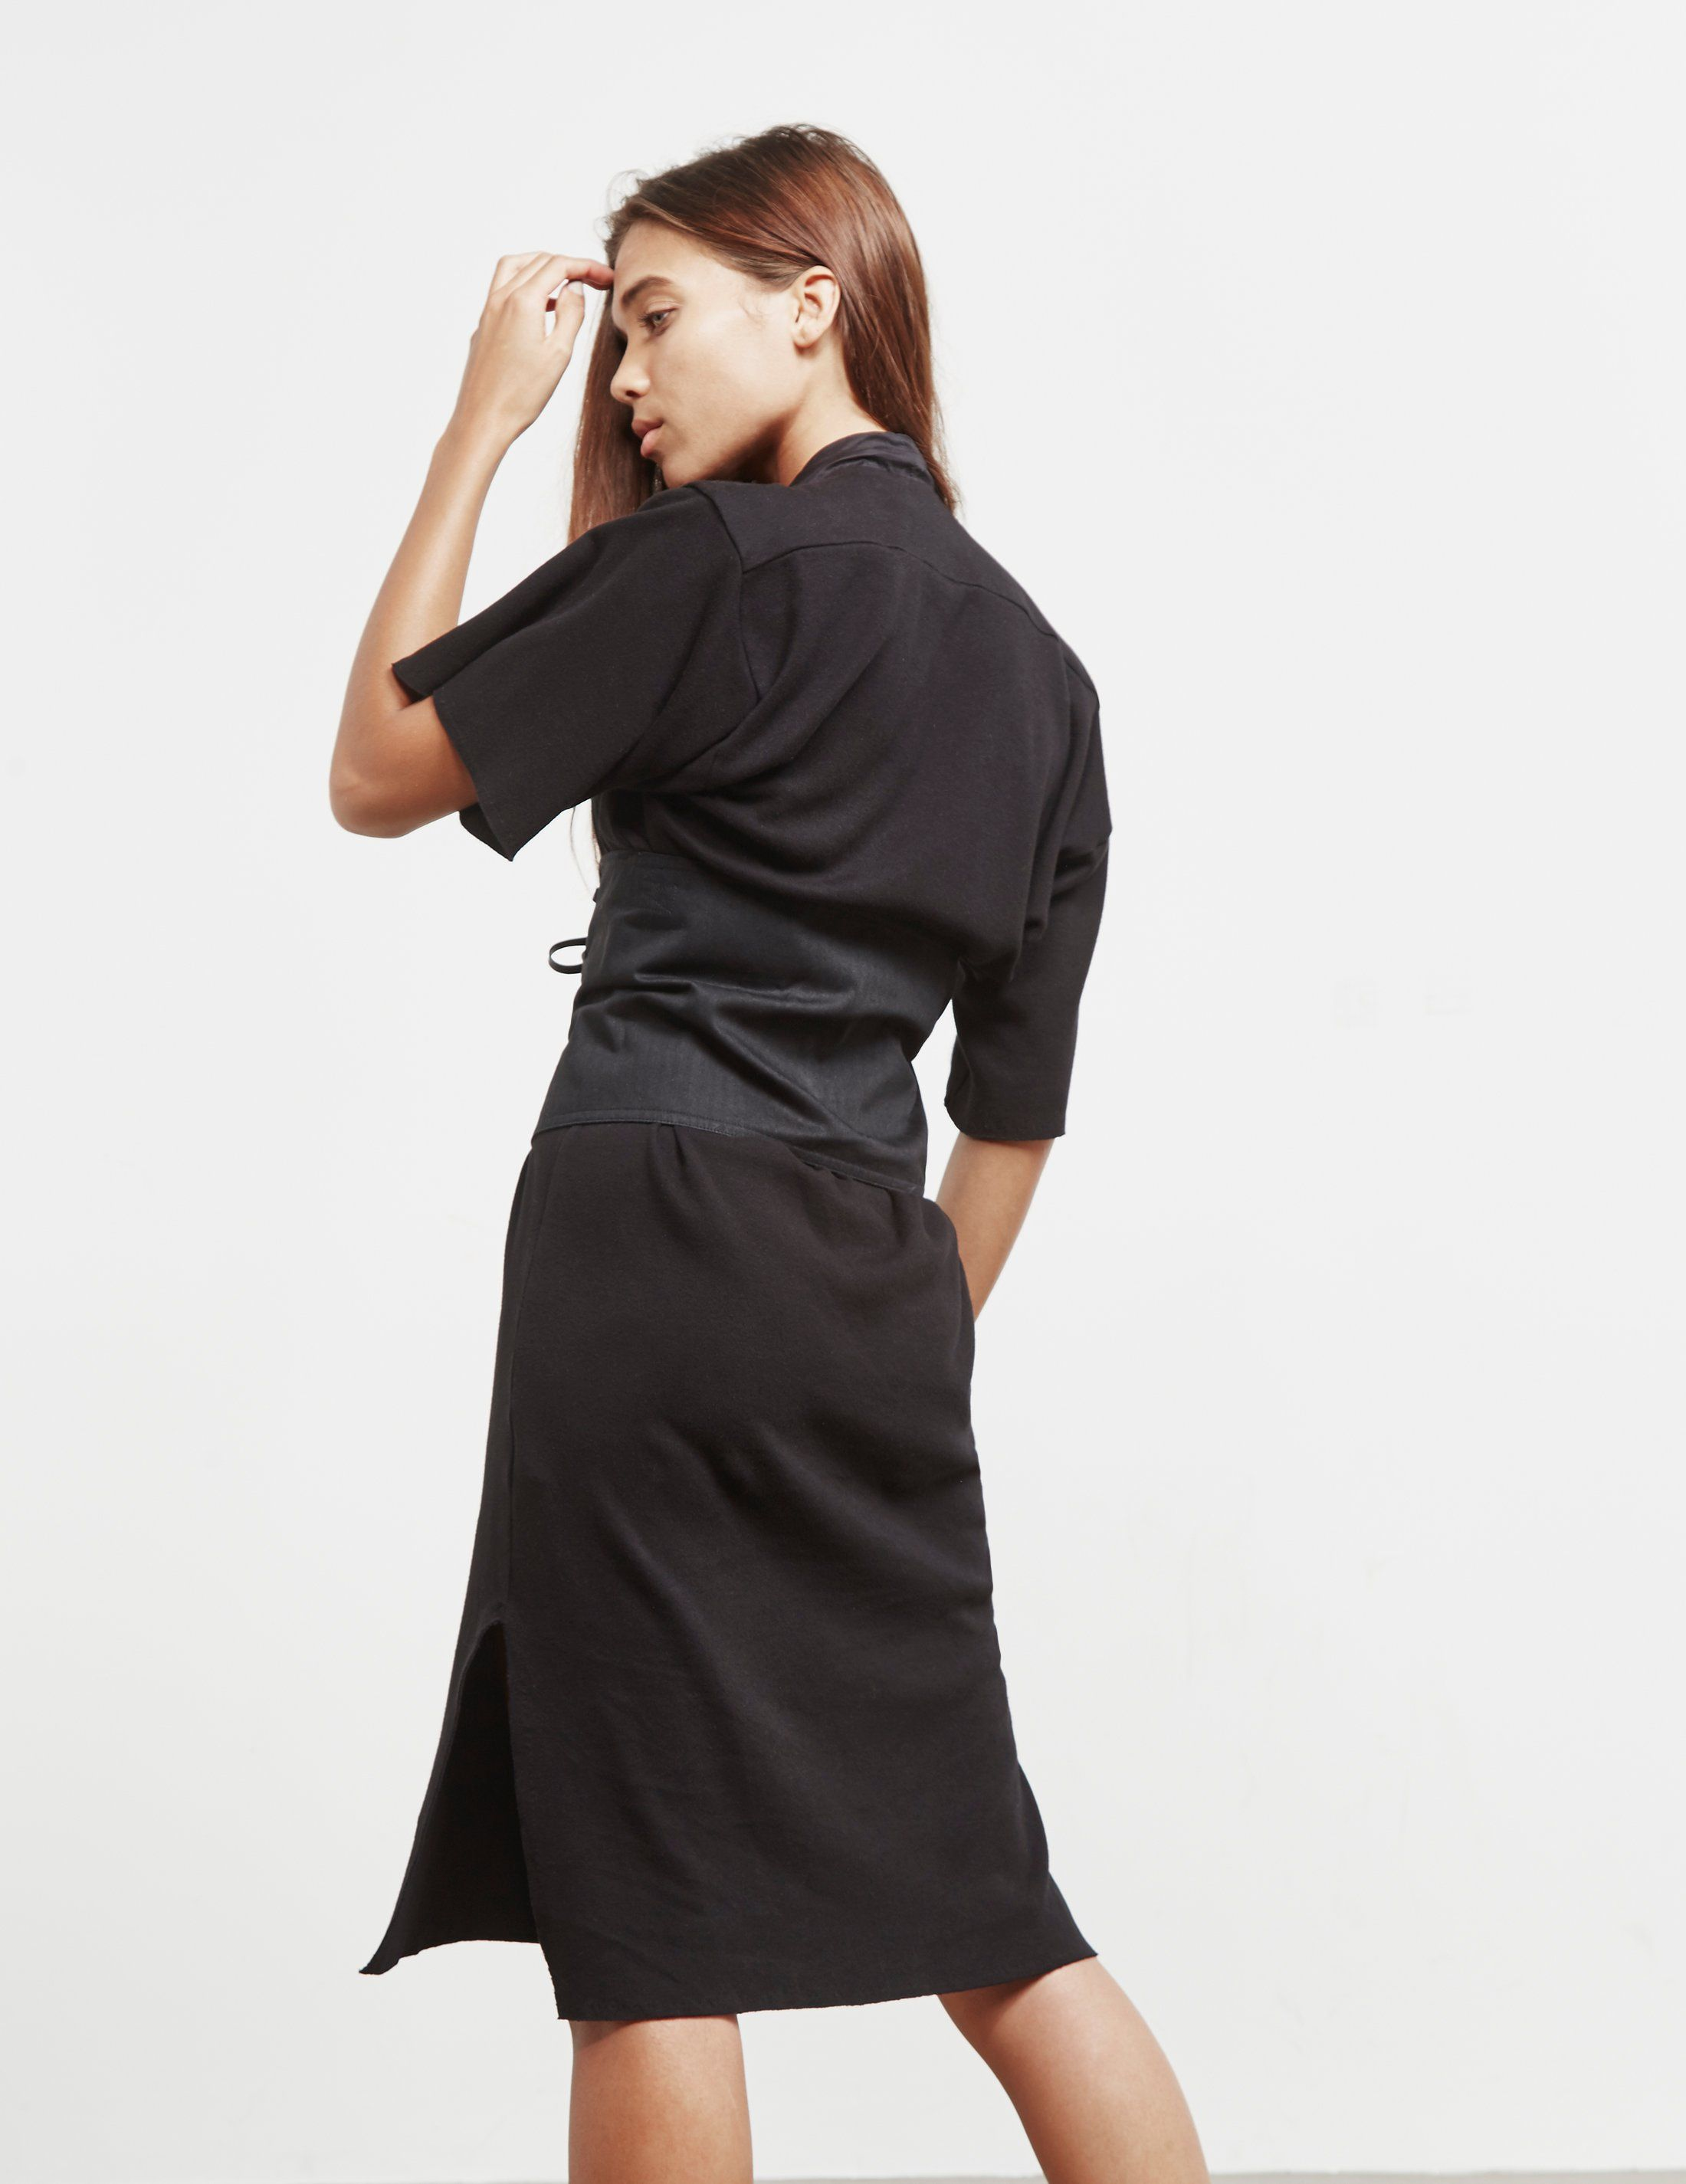 Vivienne Westwood Anglomania Boxer Dress